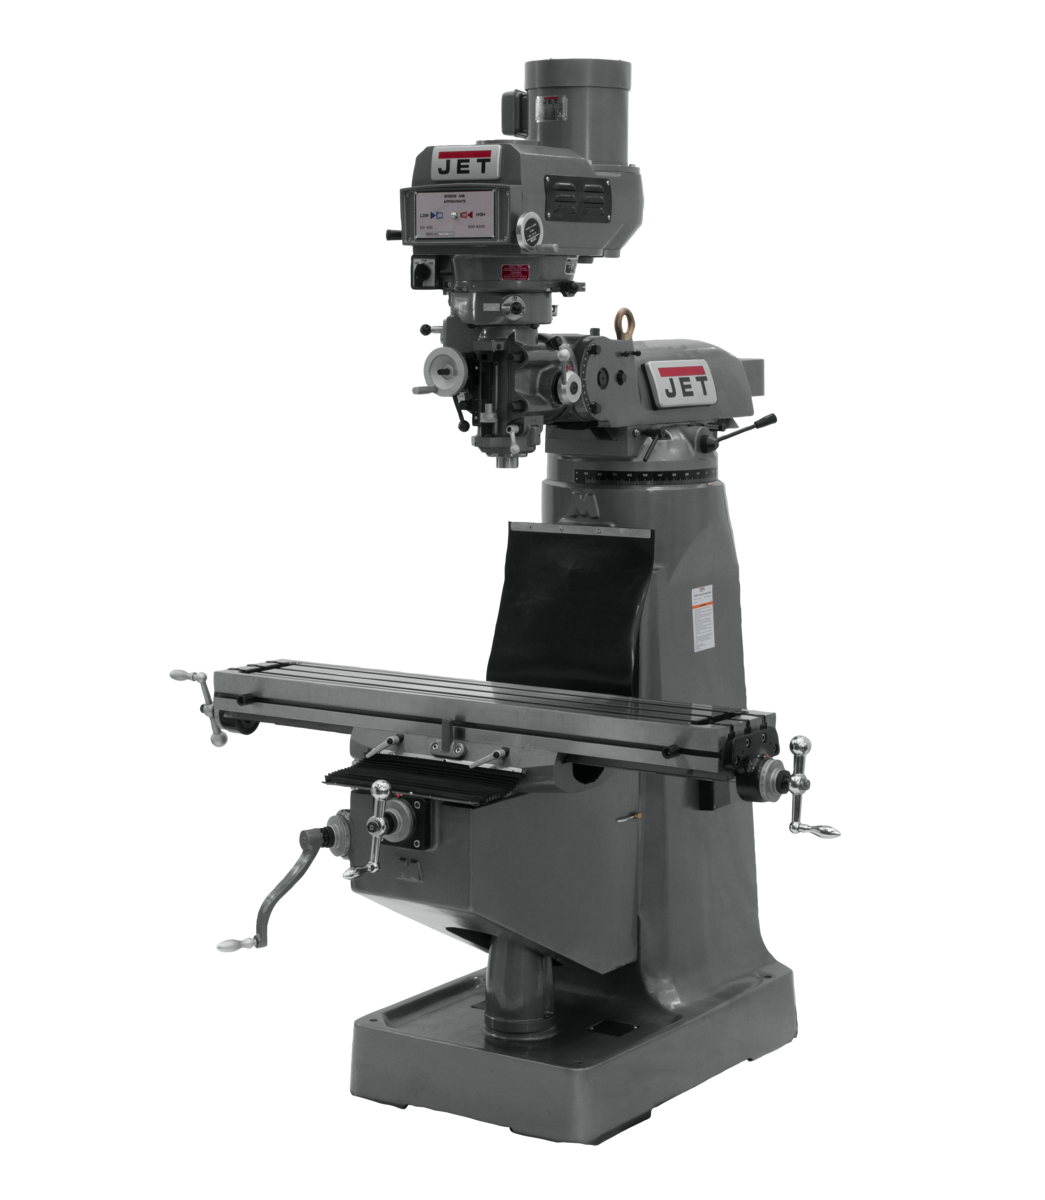 JTM-4VS-1 Mill With 3-Axis ACU-RITE 203 DRO (Knee) With X-Axis Powerfeeds